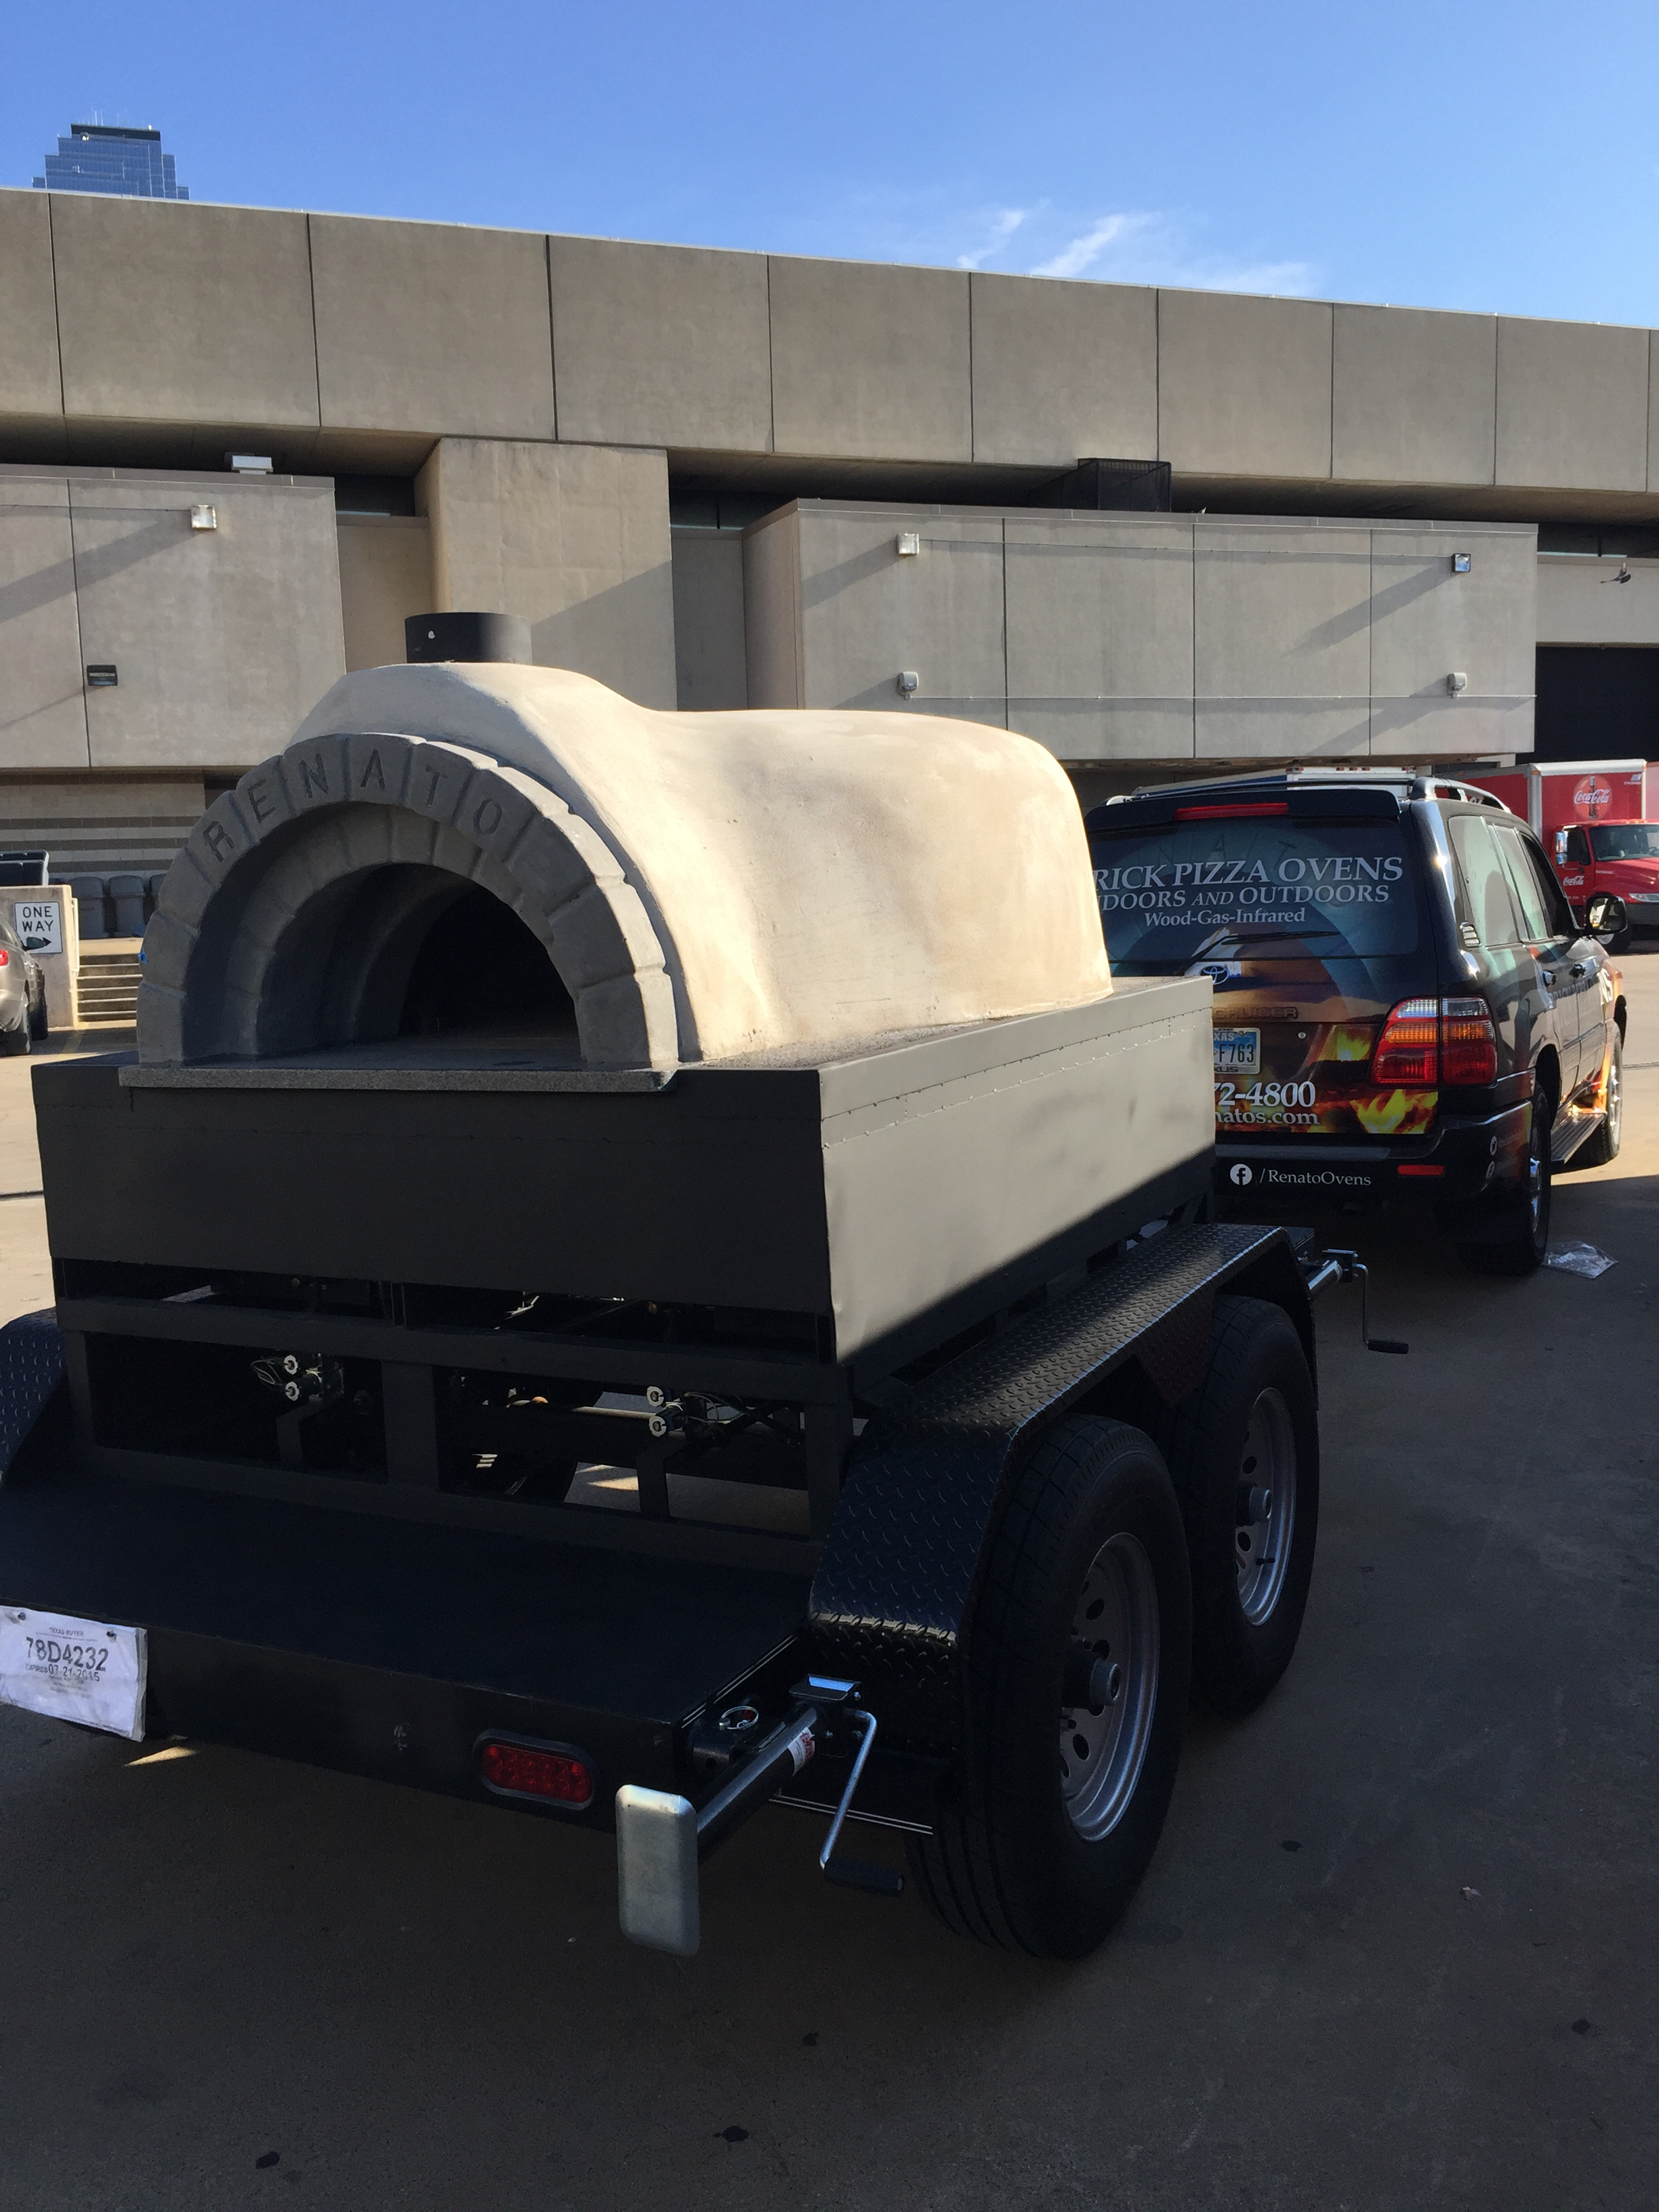 Mobile Brick Pizza Oven on Trailer